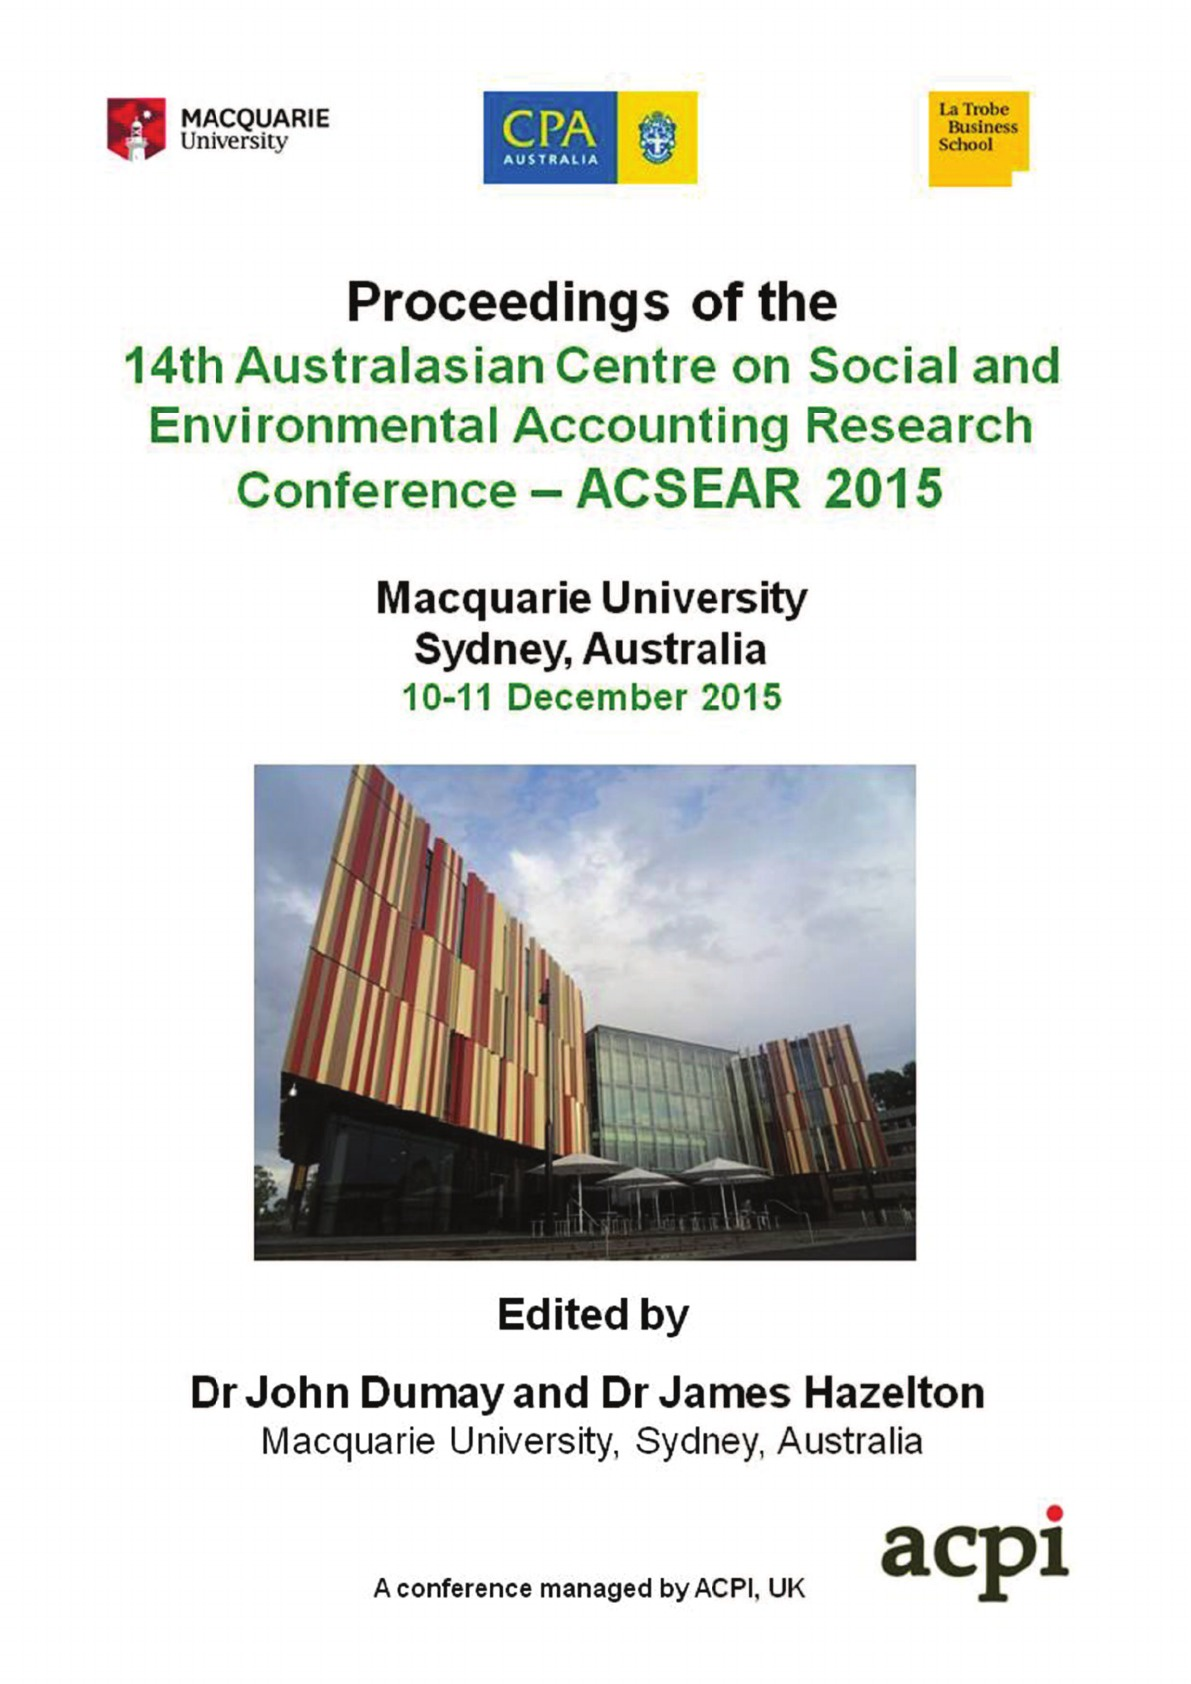 цена на A-CSEAR 2015 - 14th Australasian Centre on Social and Environmental Accounting Research Conference